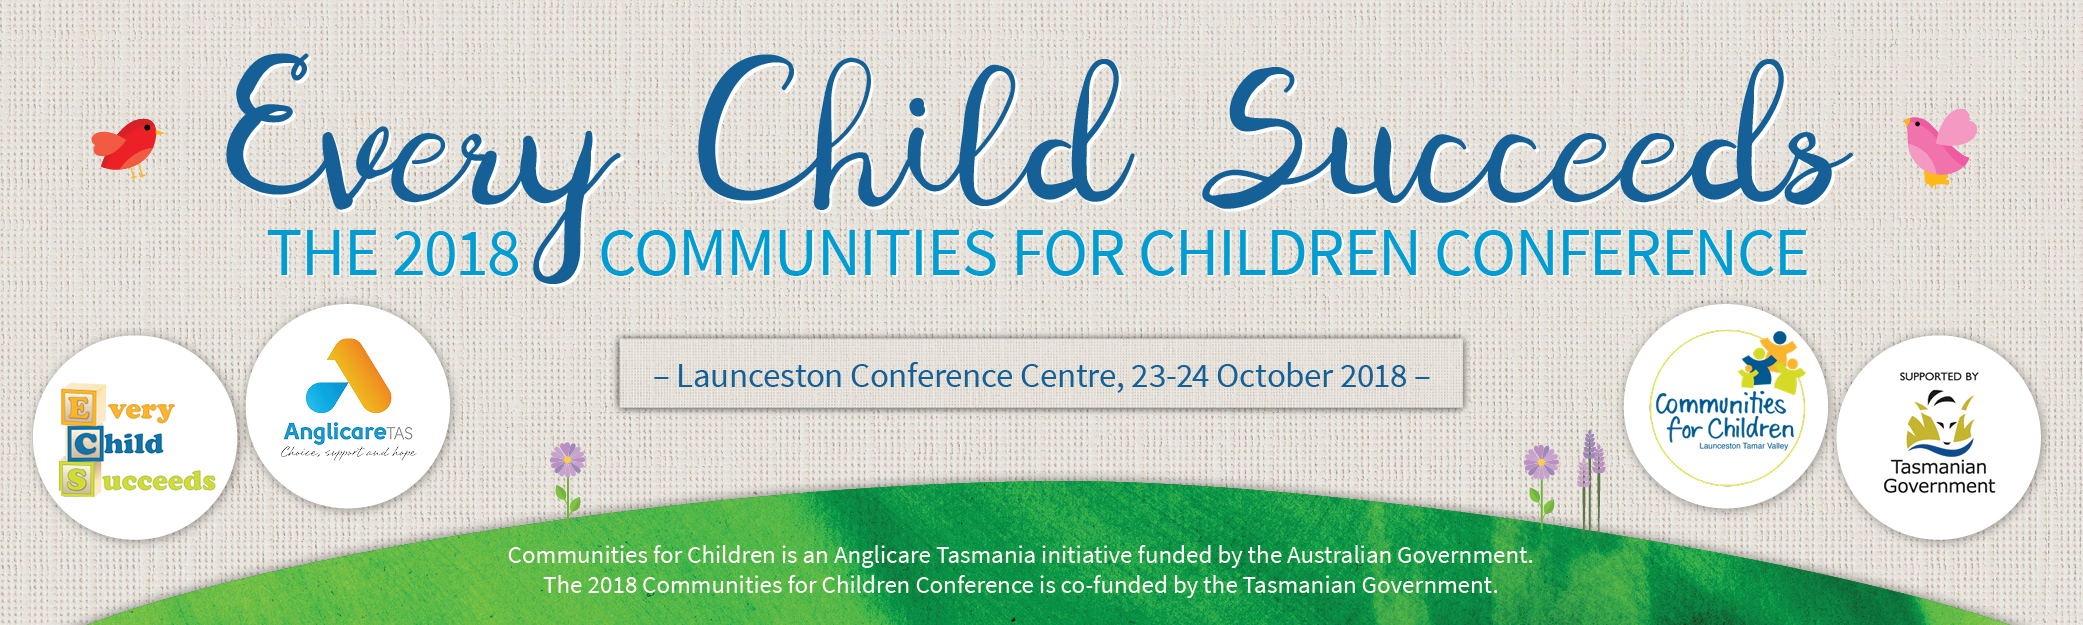 Communities for Children Conference 2018: Every Child Succeeds